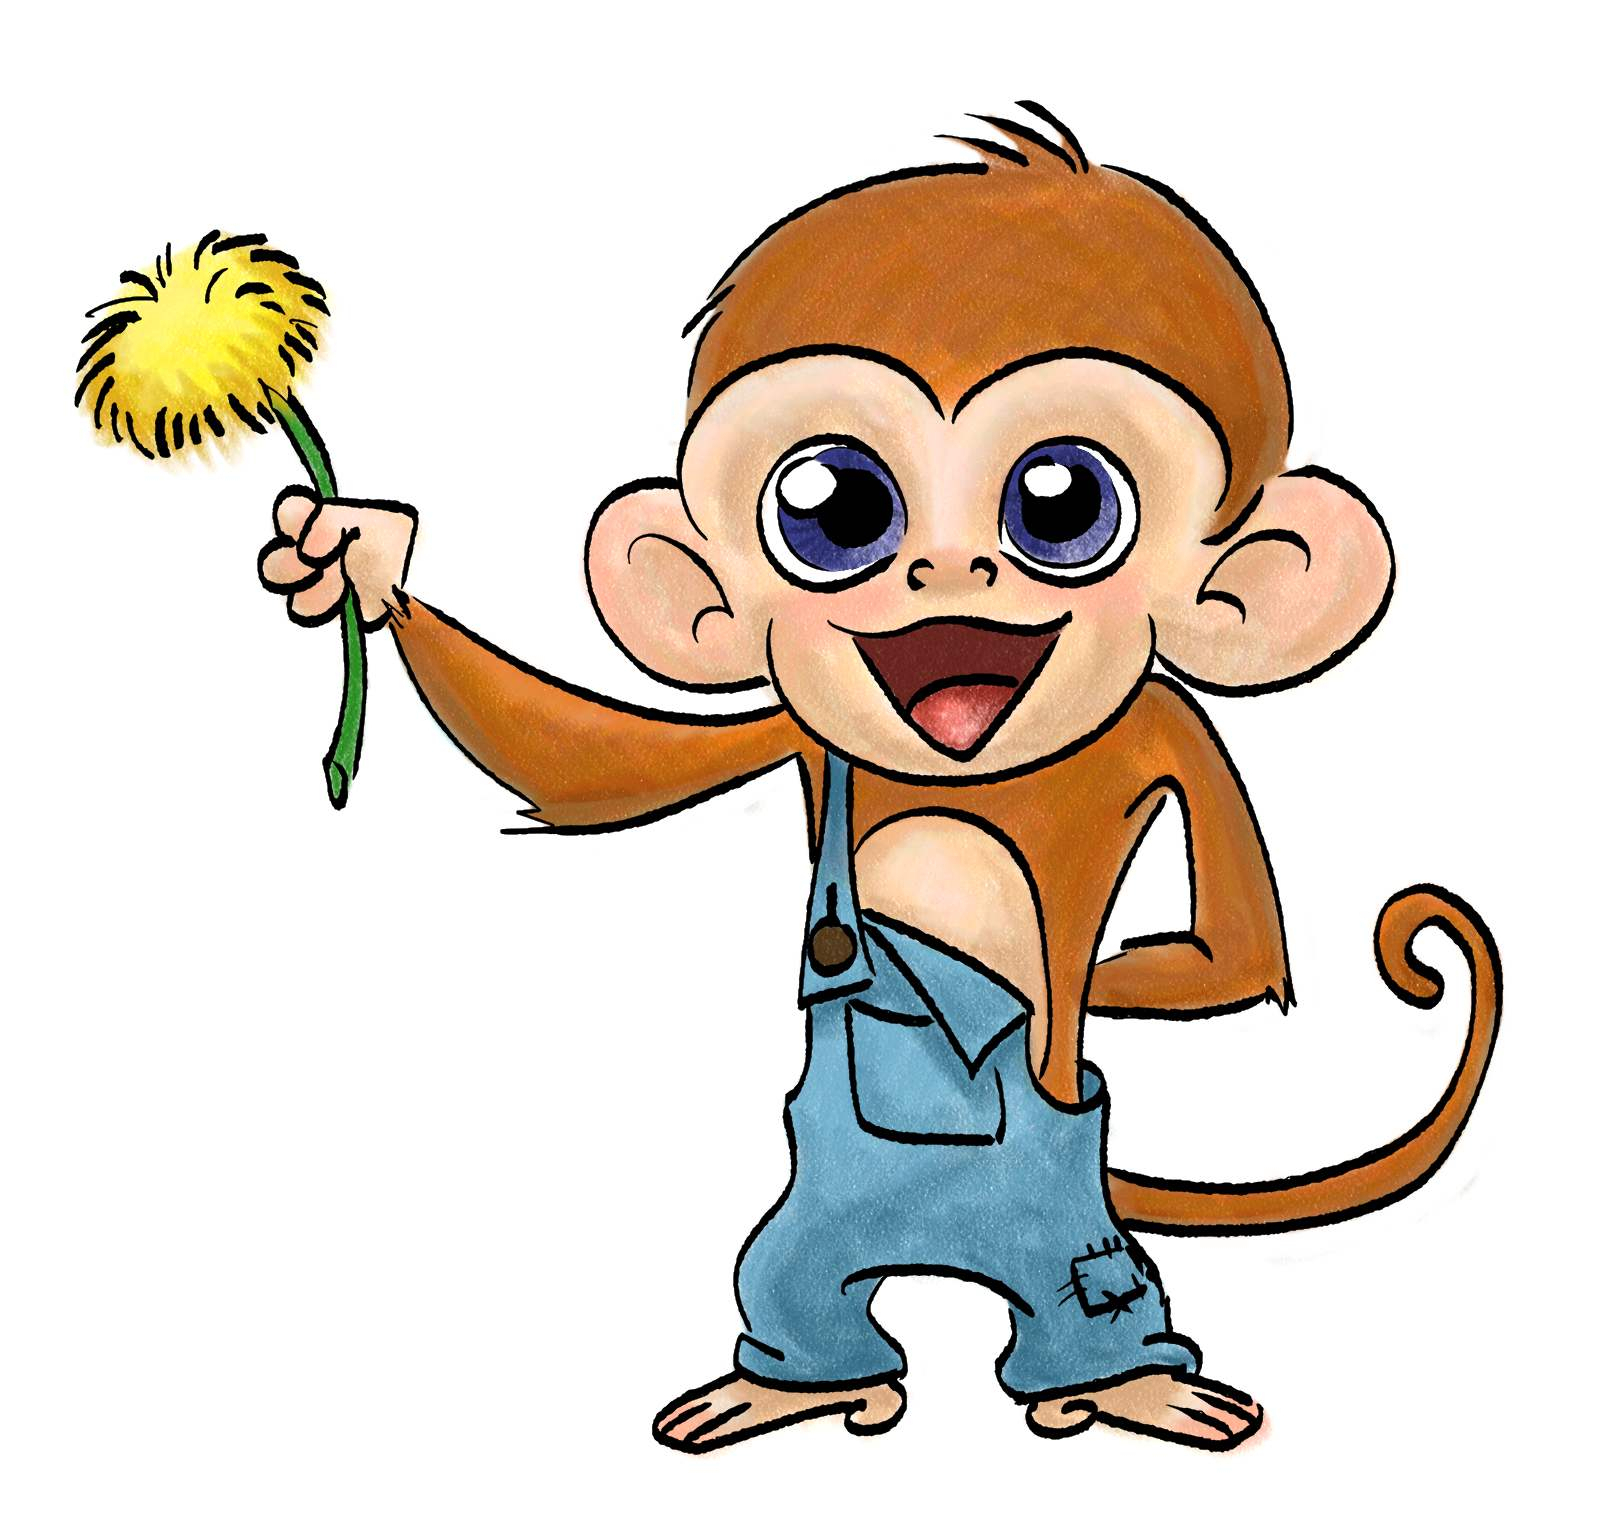 1616x1524 Cute Monkey Drawings Cute Baby Monkey Drawings Cute Baby Monkey